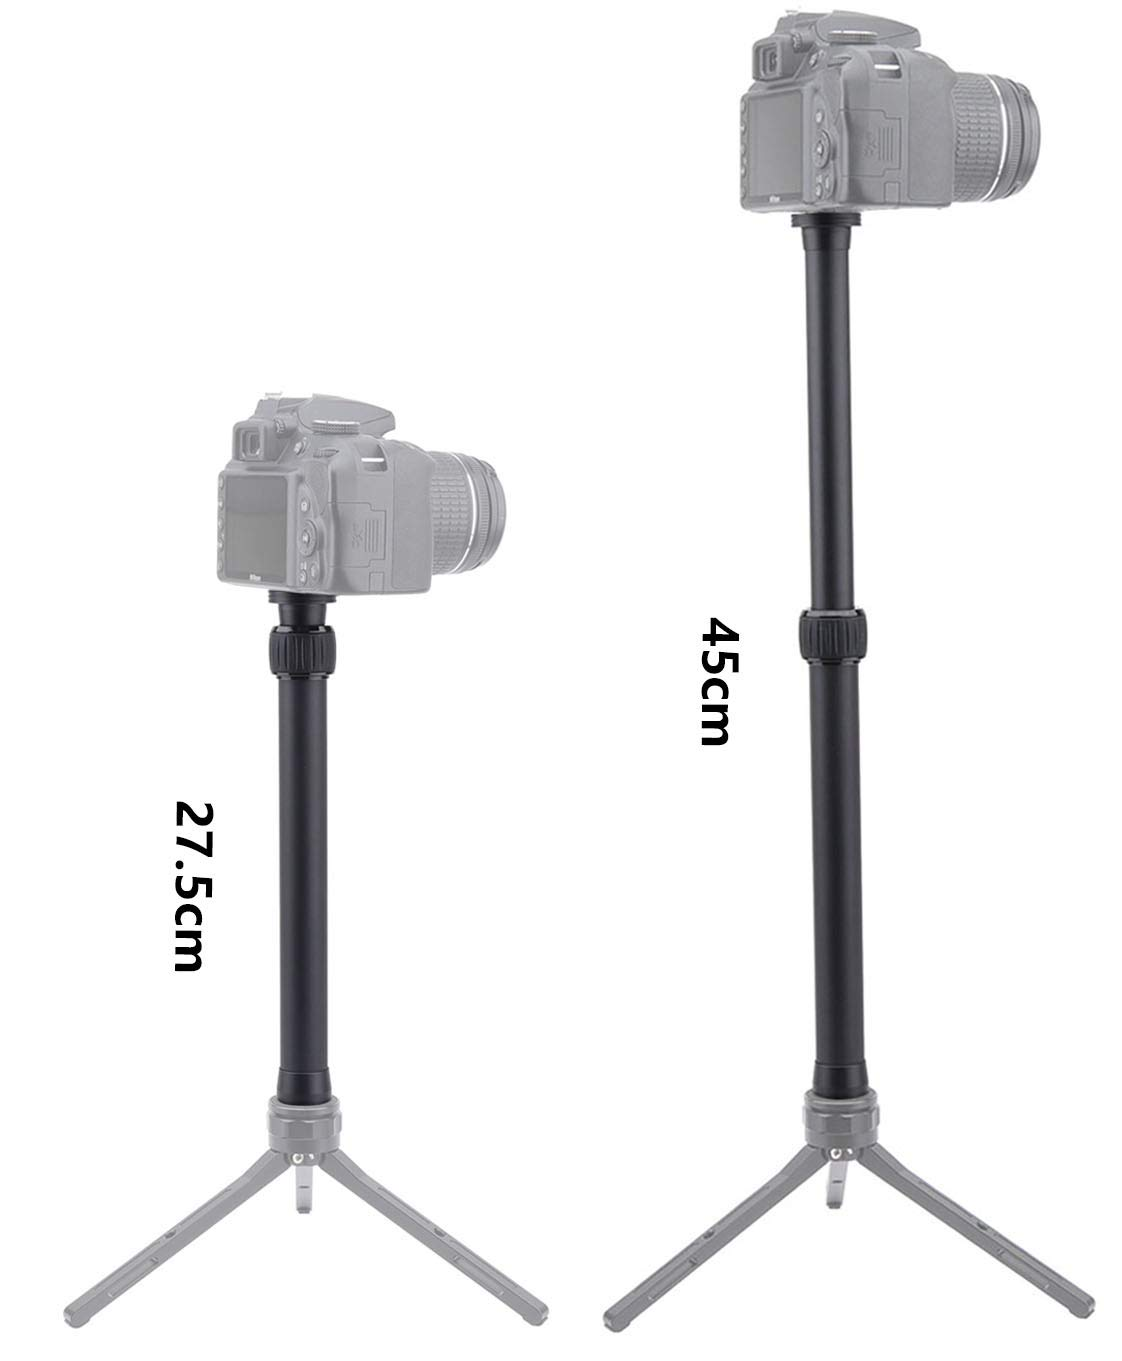 AFFVO Universal Extension Rod//Tripod Pole for Ronin S//SC Crane 2 Moza Air 2 2 Section Extendable, Black